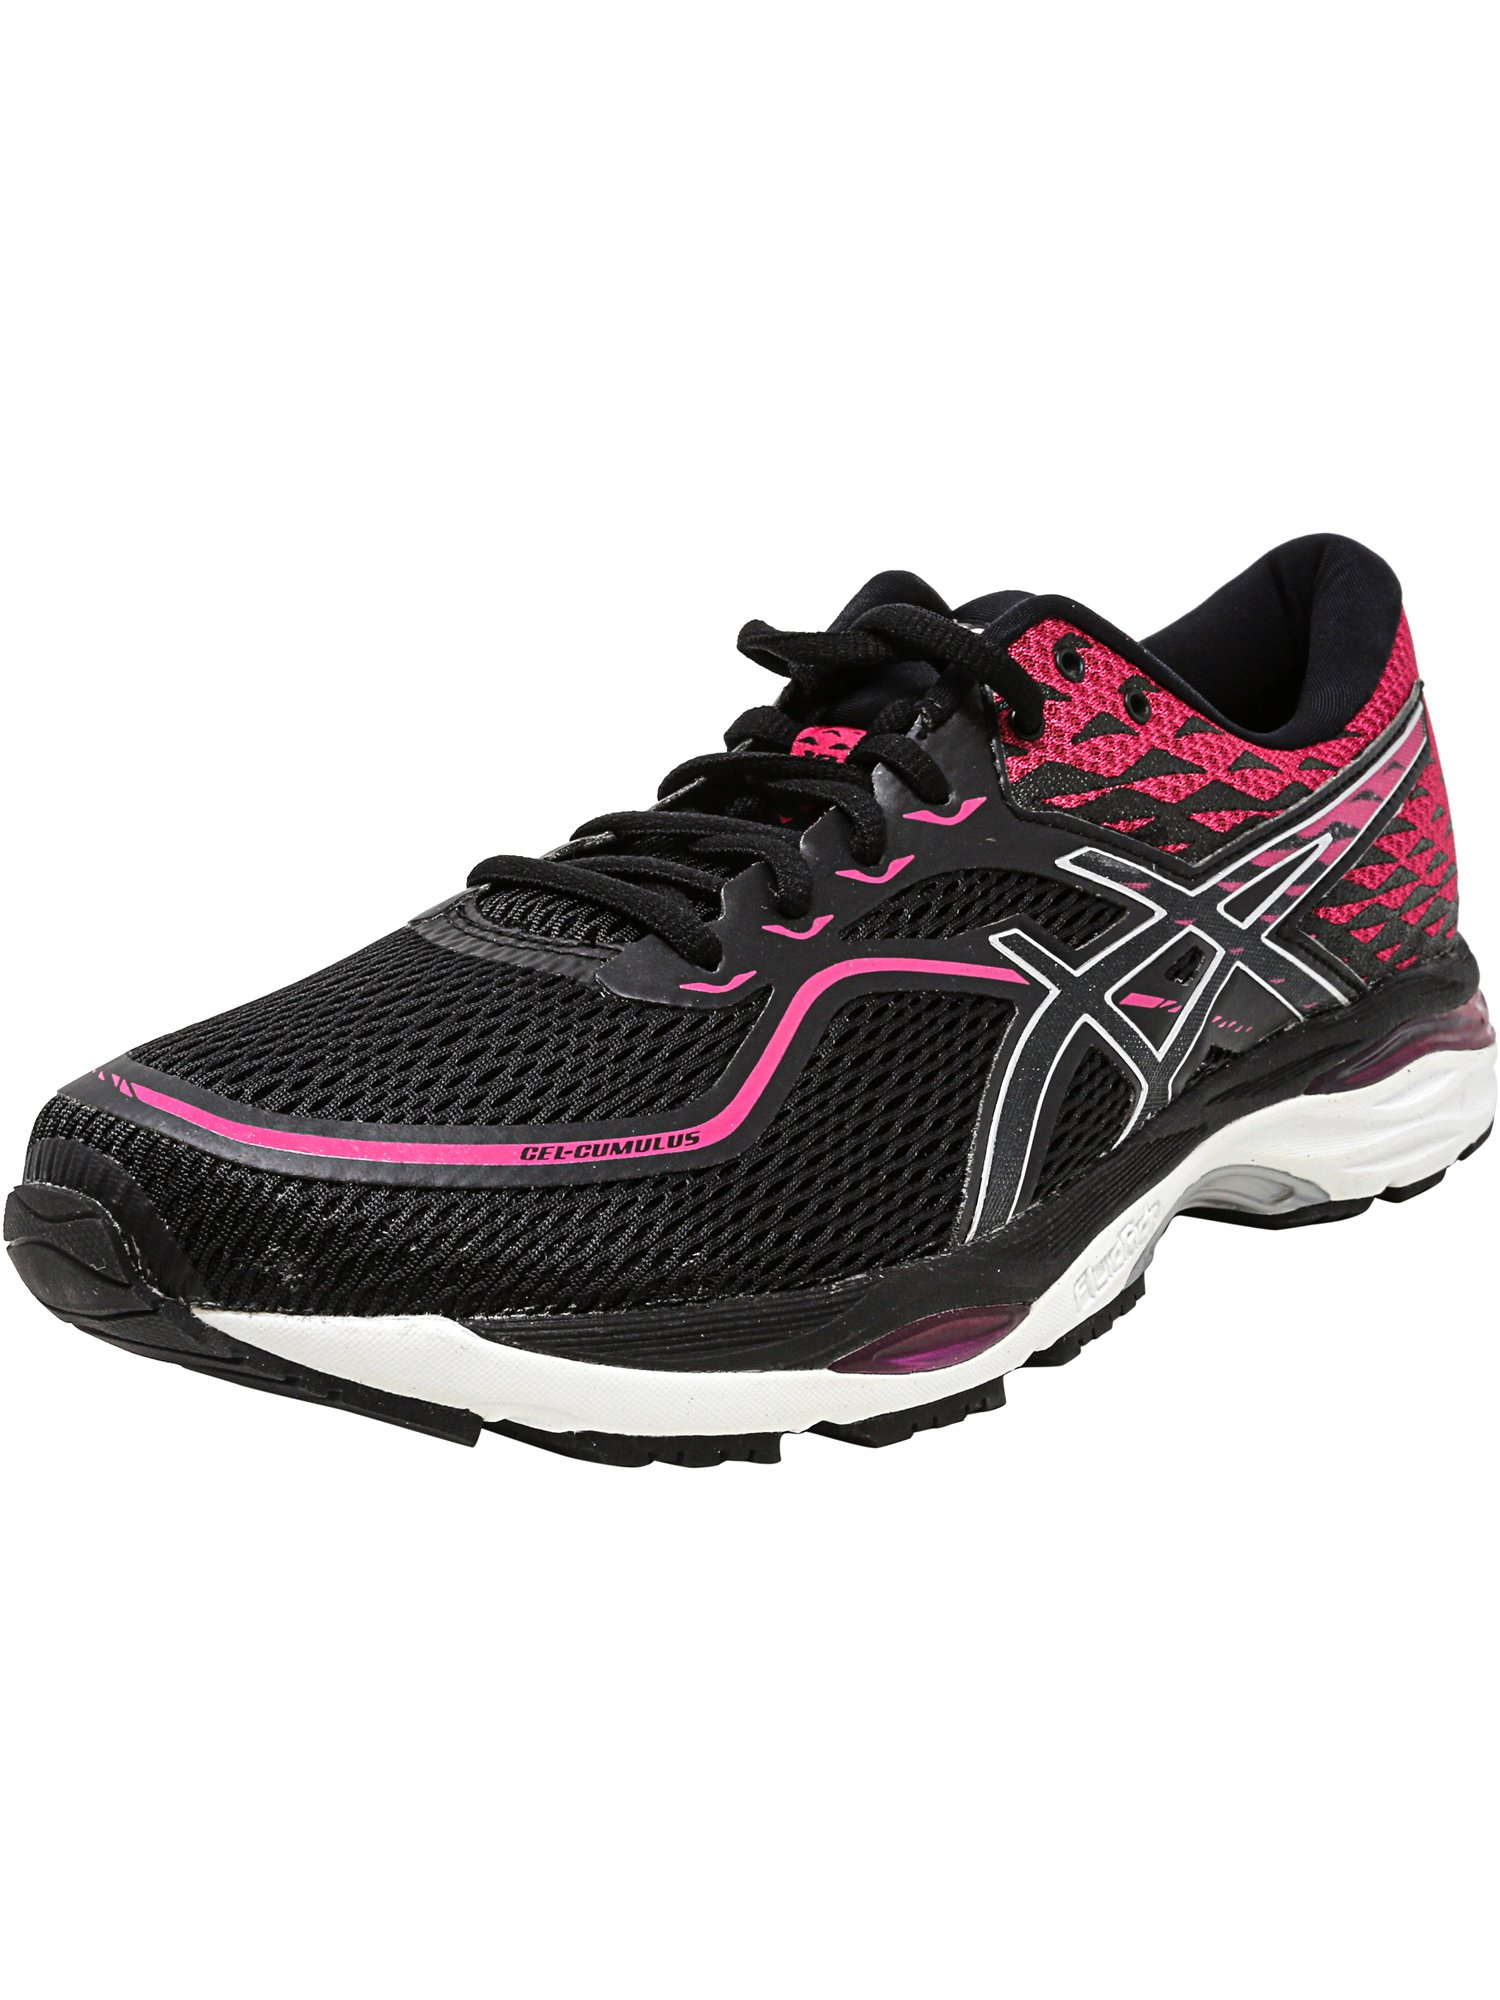 Asics Women's Gel-Cumulus 19 Mid Grey / Carbon Safety Yellow Ankle-High Running Shoe - 9.5M